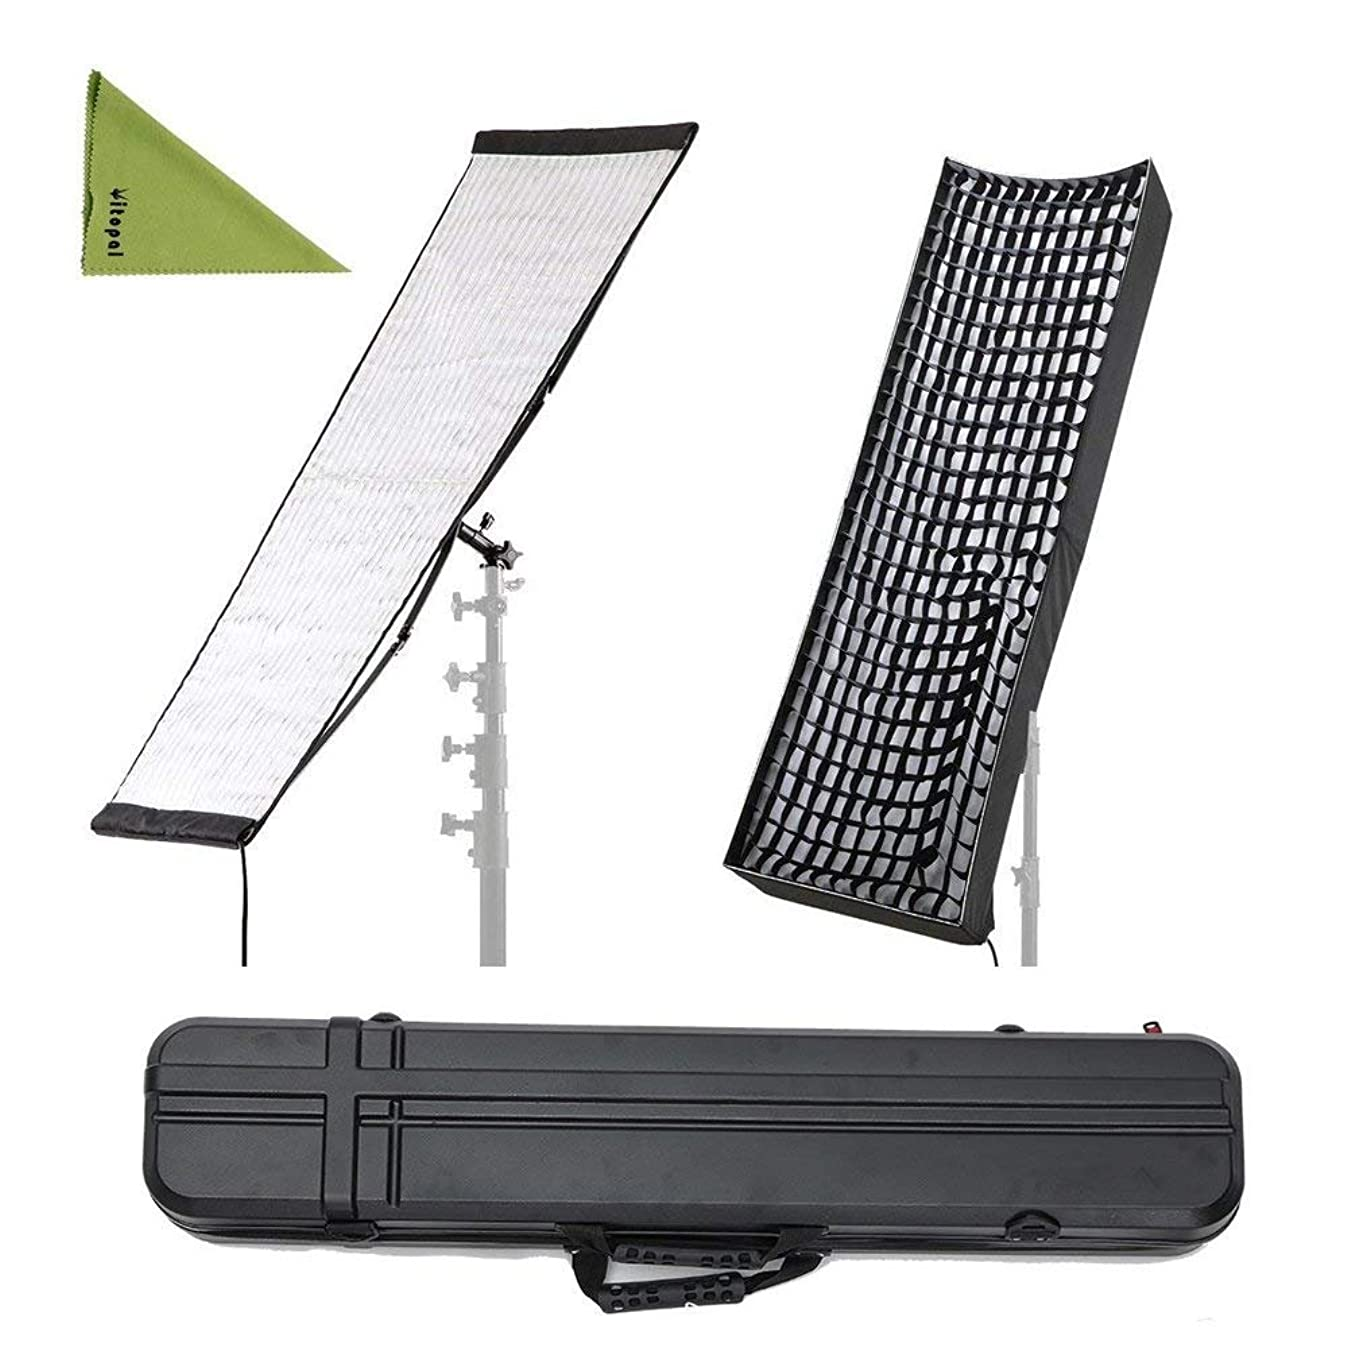 Falcon Eyes RX-36TDX 250W Flexible LED with RX-36SBHC Honeycomb Grid Softbox Dimmable 3000K-5600K LED Portable Light Compatible with DMX 512 thctwpicd